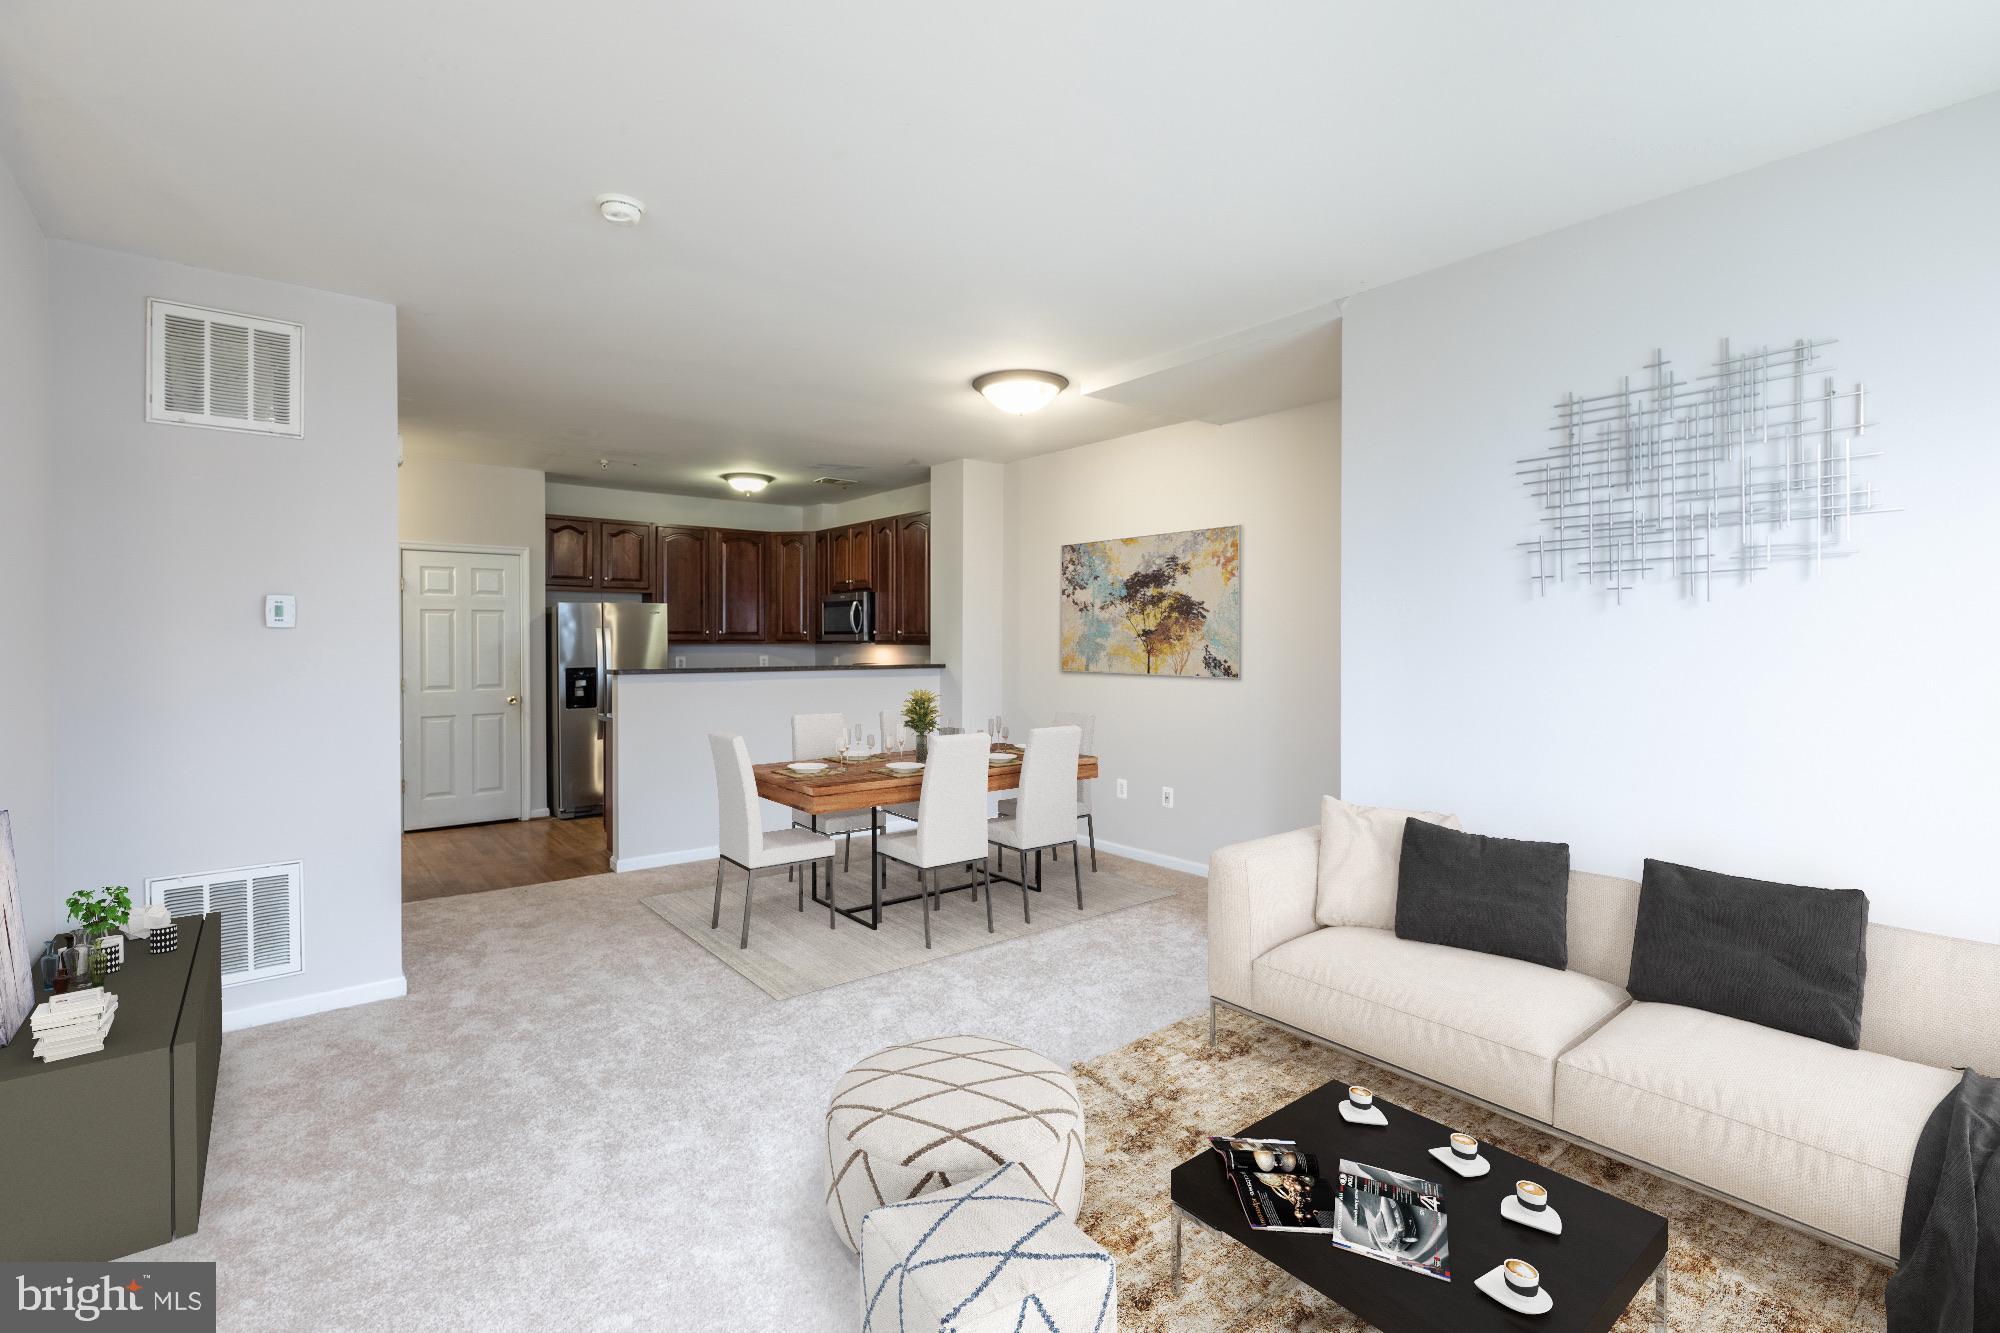 Beautiful end unit townhouse style condo in Woodbridge! It has 3 spacious bedrooms, 2.5 bathrooms an